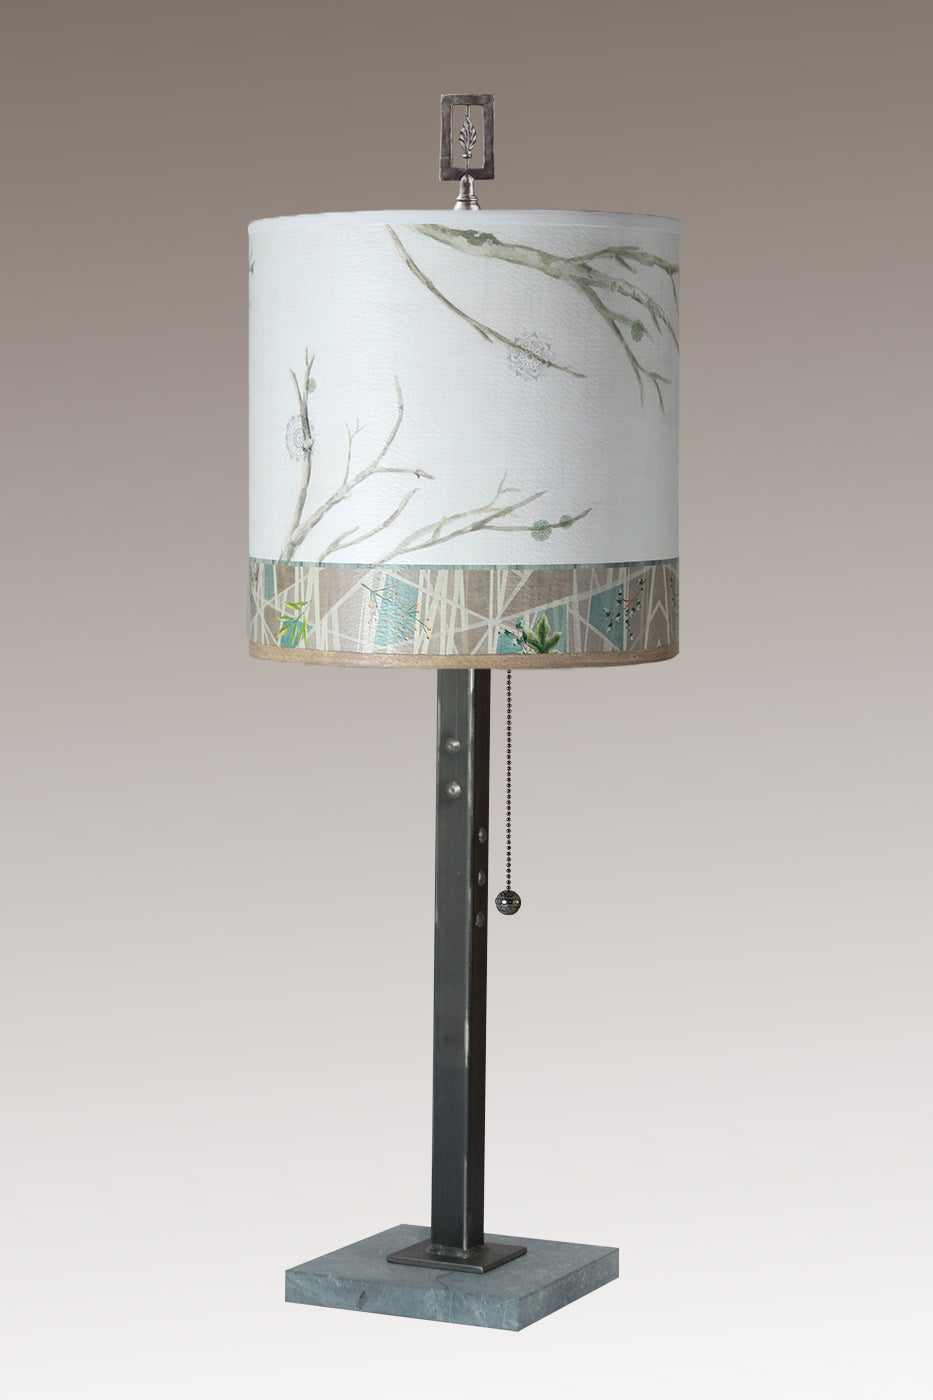 Steel Table Lamp on Marble with Medium Drum Shade in Prism Branch